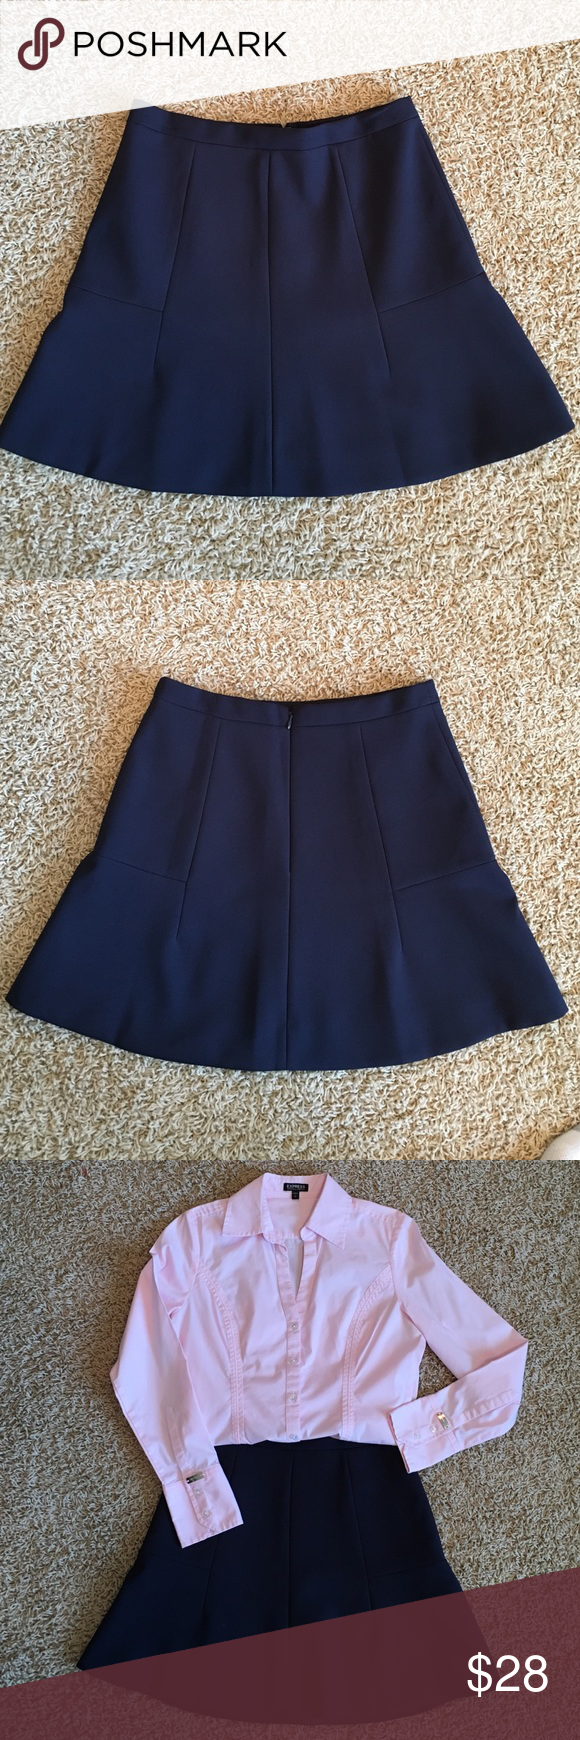 🍁🍂 J. Crew Navy Skirt 🍂🍁 J. Crew Navy Skirt, Size 0, 75% polyester, 20% viscose, 5% spandex 100% polyester lining, Perfect condition J. Crew Skirts